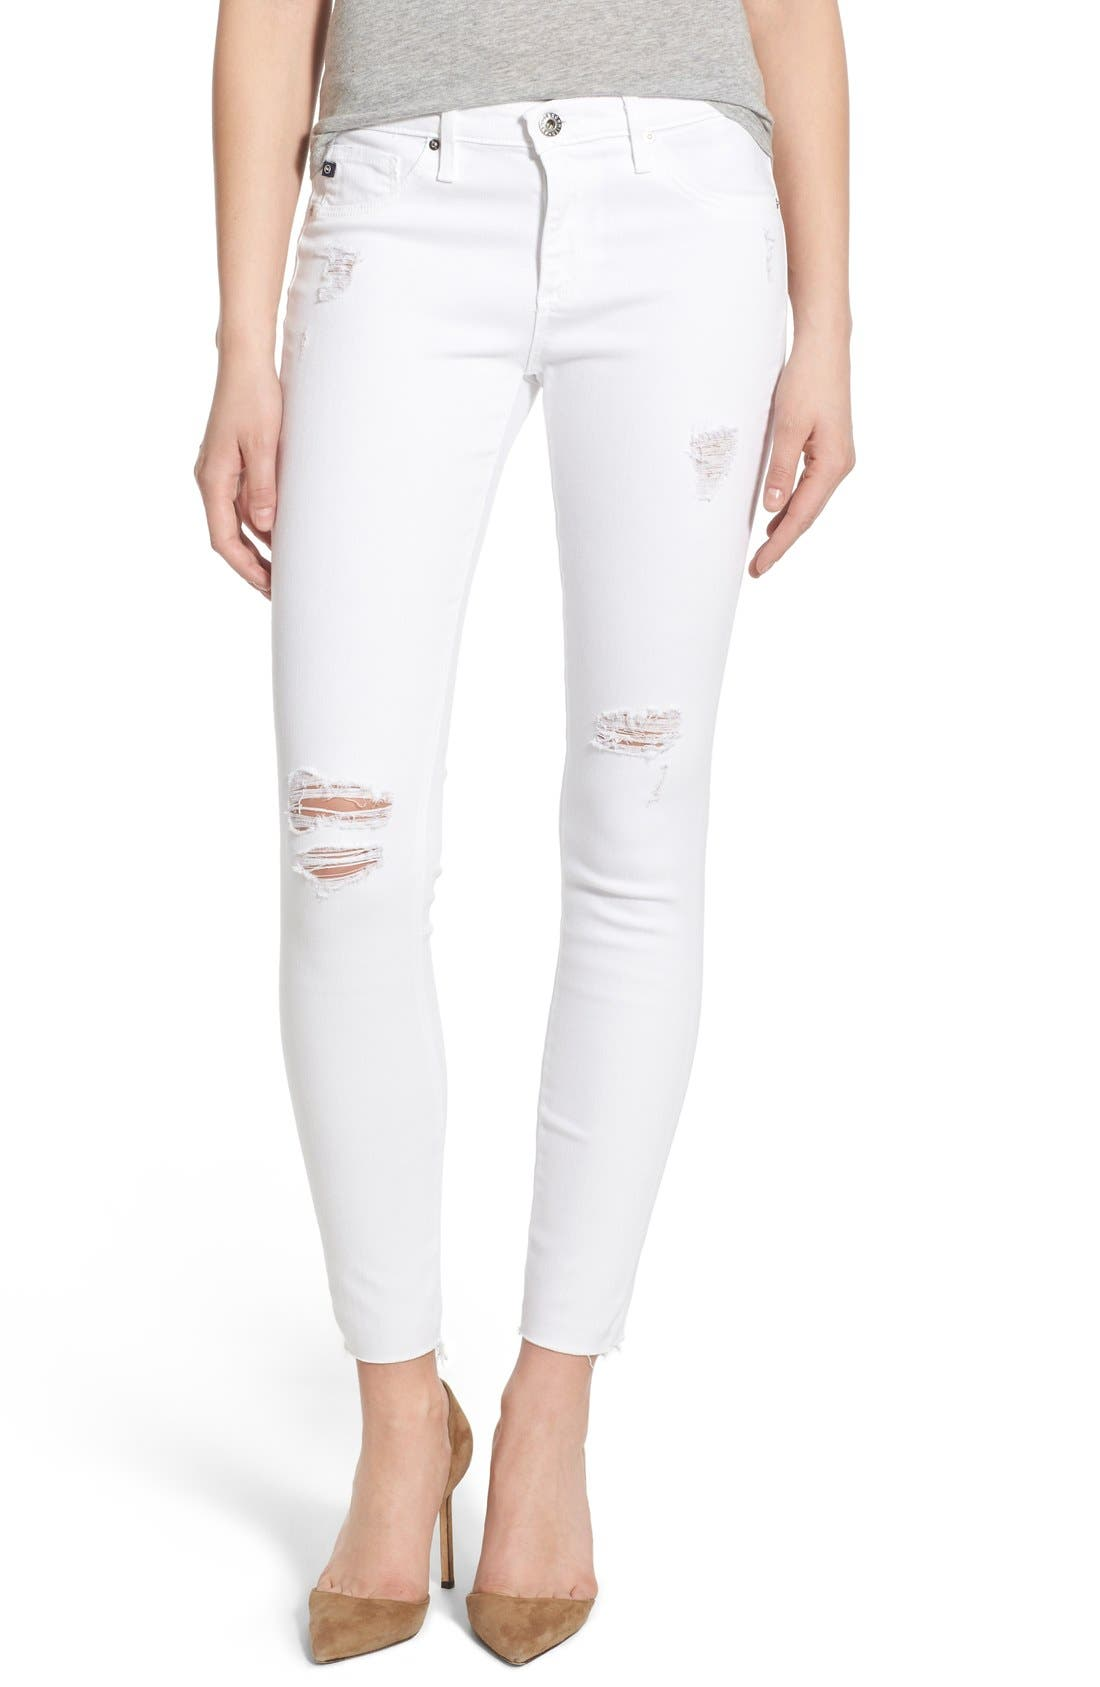 AG 'The Legging' Cutoff Ankle Skinny Jeans, Main, color, 100